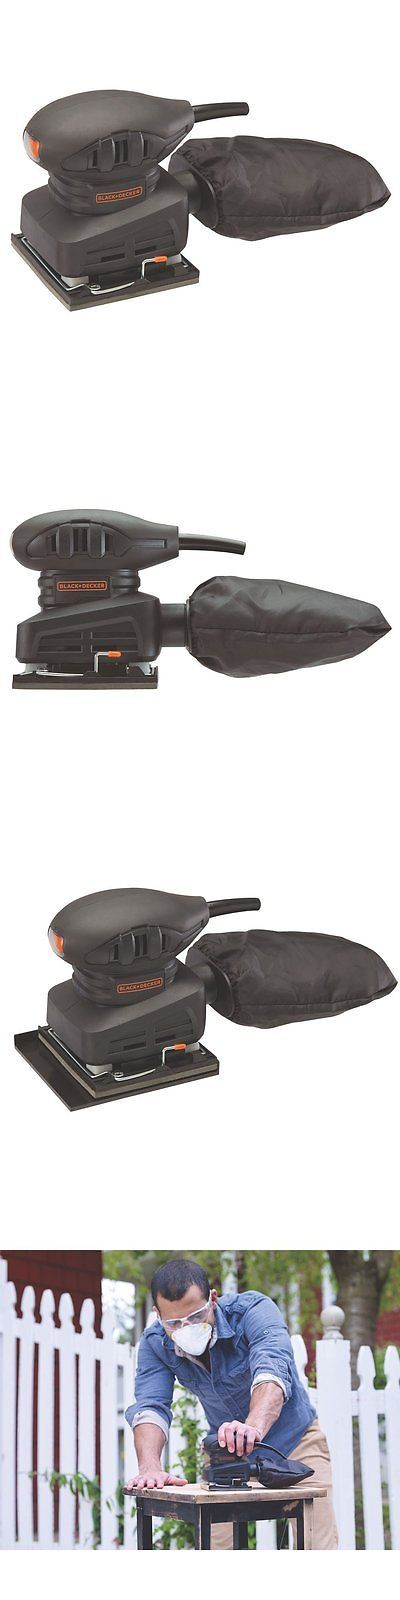 Finishing and Detail Sanders 43594: Black Decker Electric Hand Grip Lightweight 1 4 Sheet Sander Power Tool New -> BUY IT NOW ONLY: $42.9 on eBay!